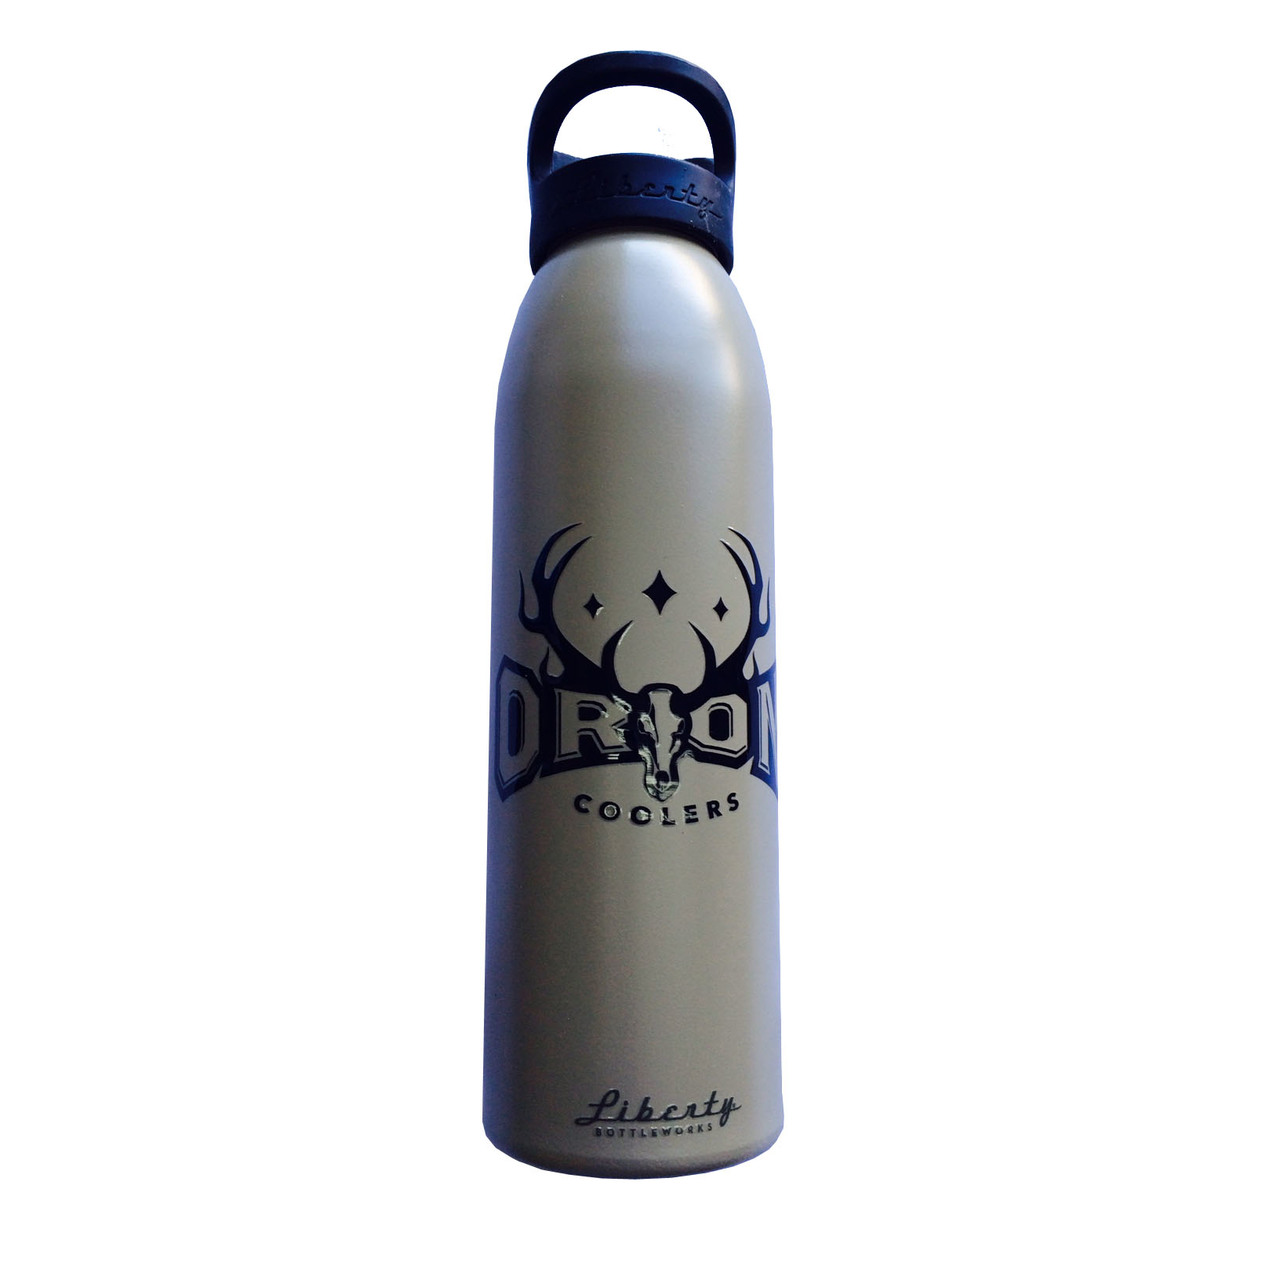 Orion 24 oz Liberty Water Bottle